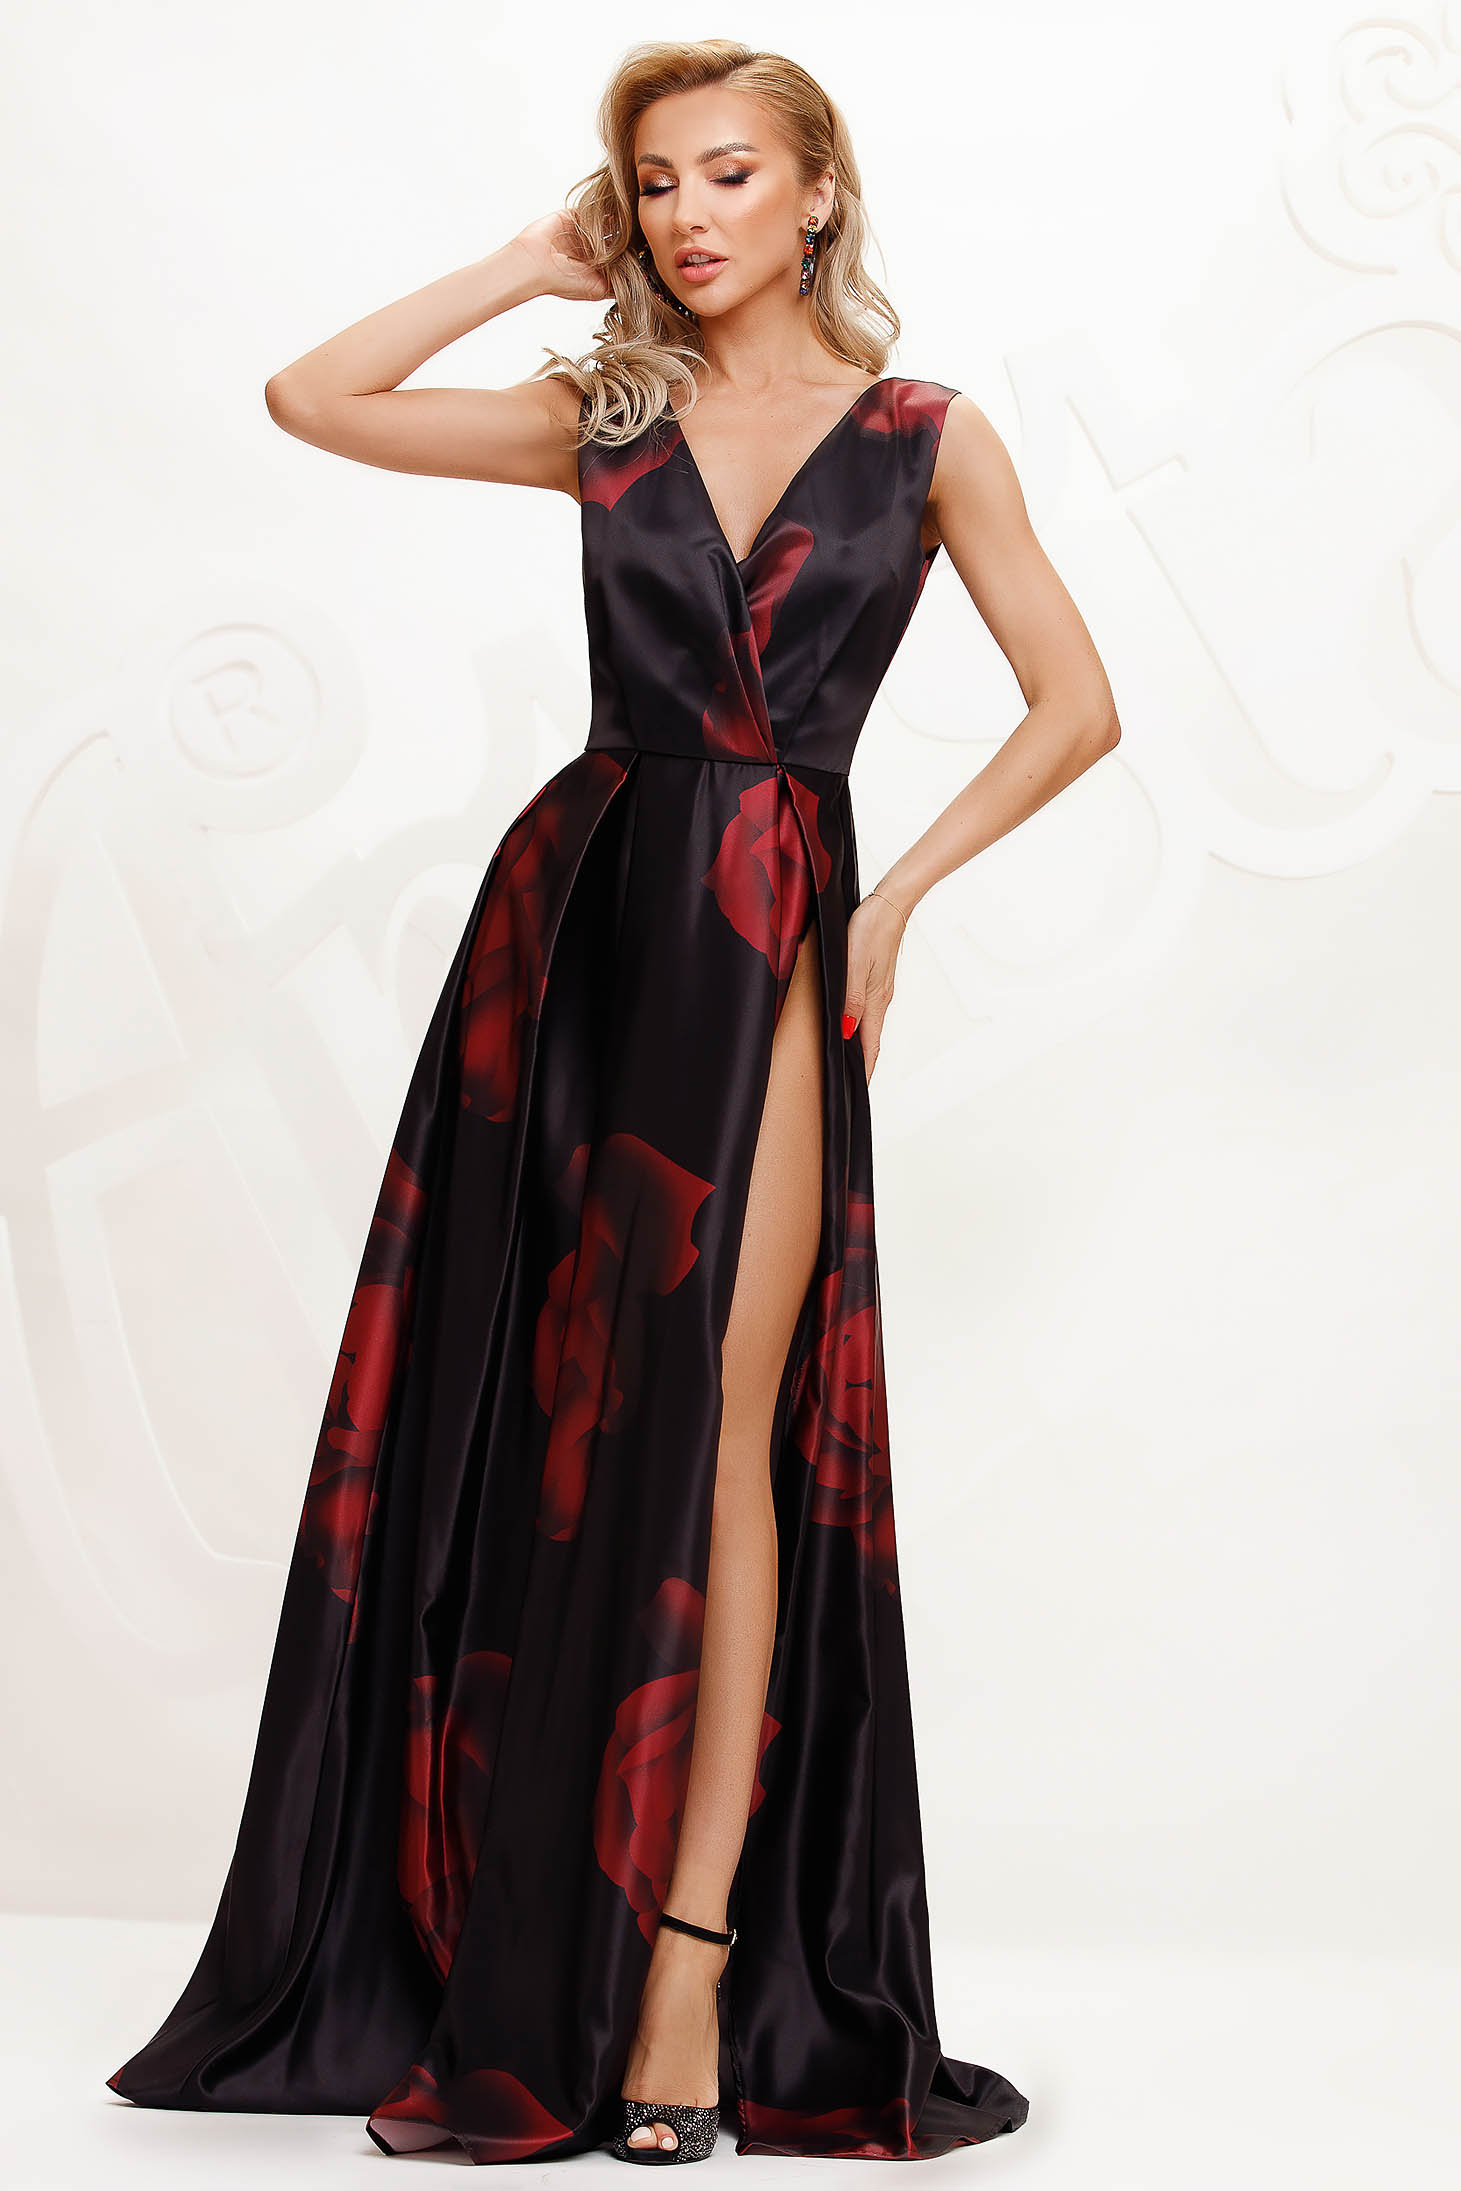 Burgundy dress with floral print cloche occasional slit from satin